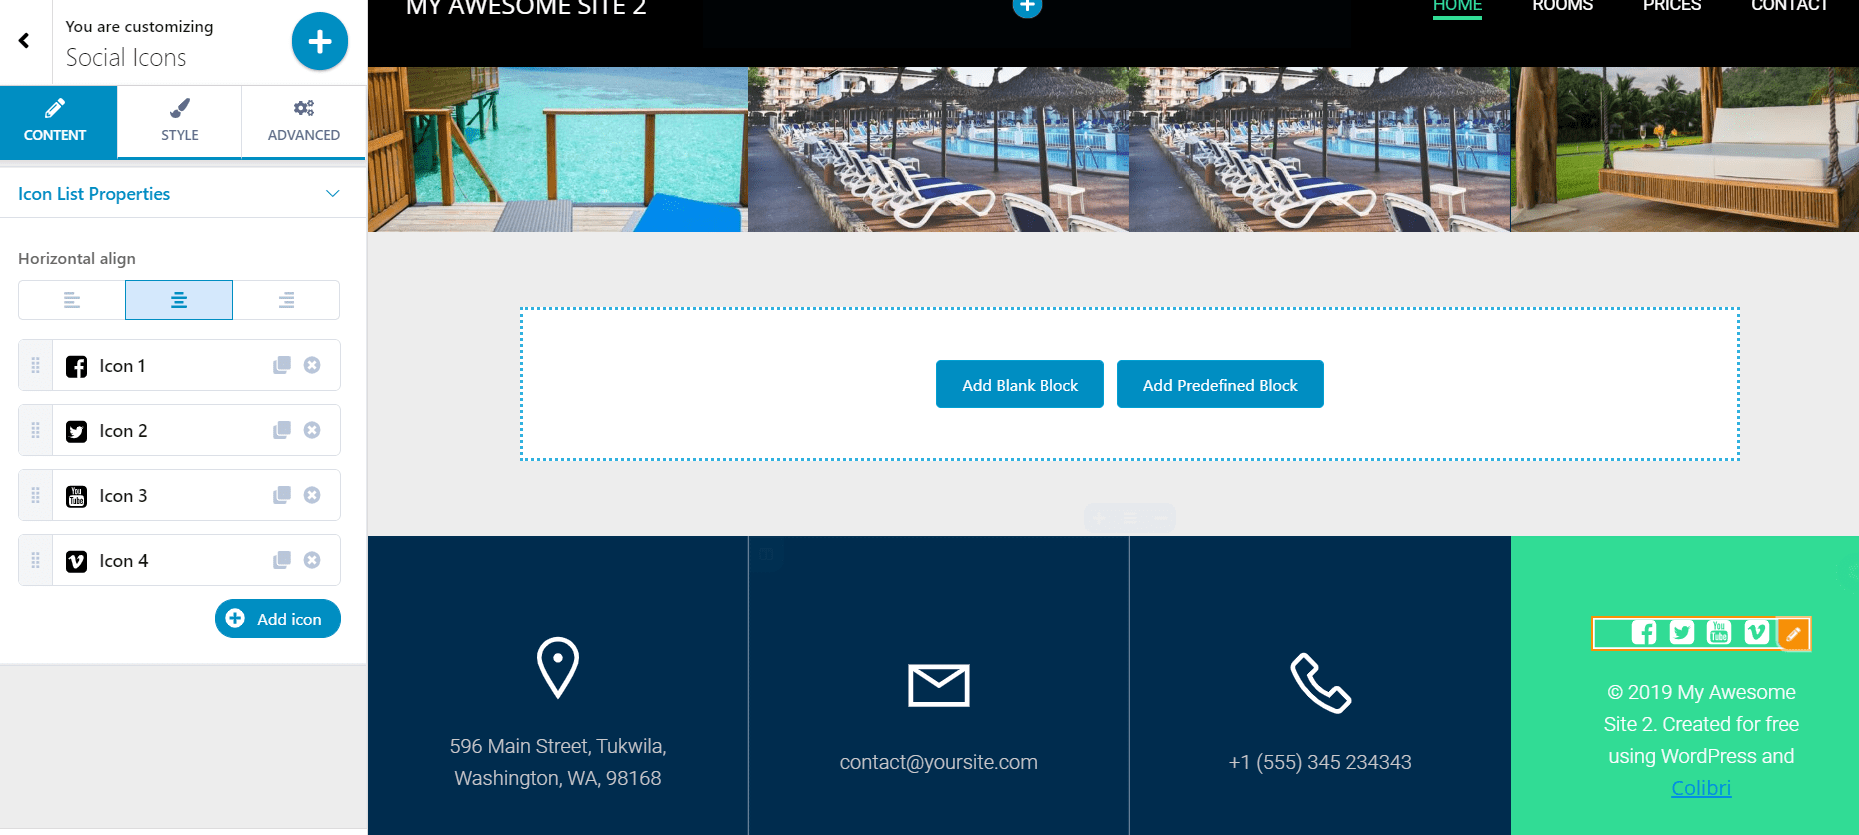 Resorts website - inserting social icons